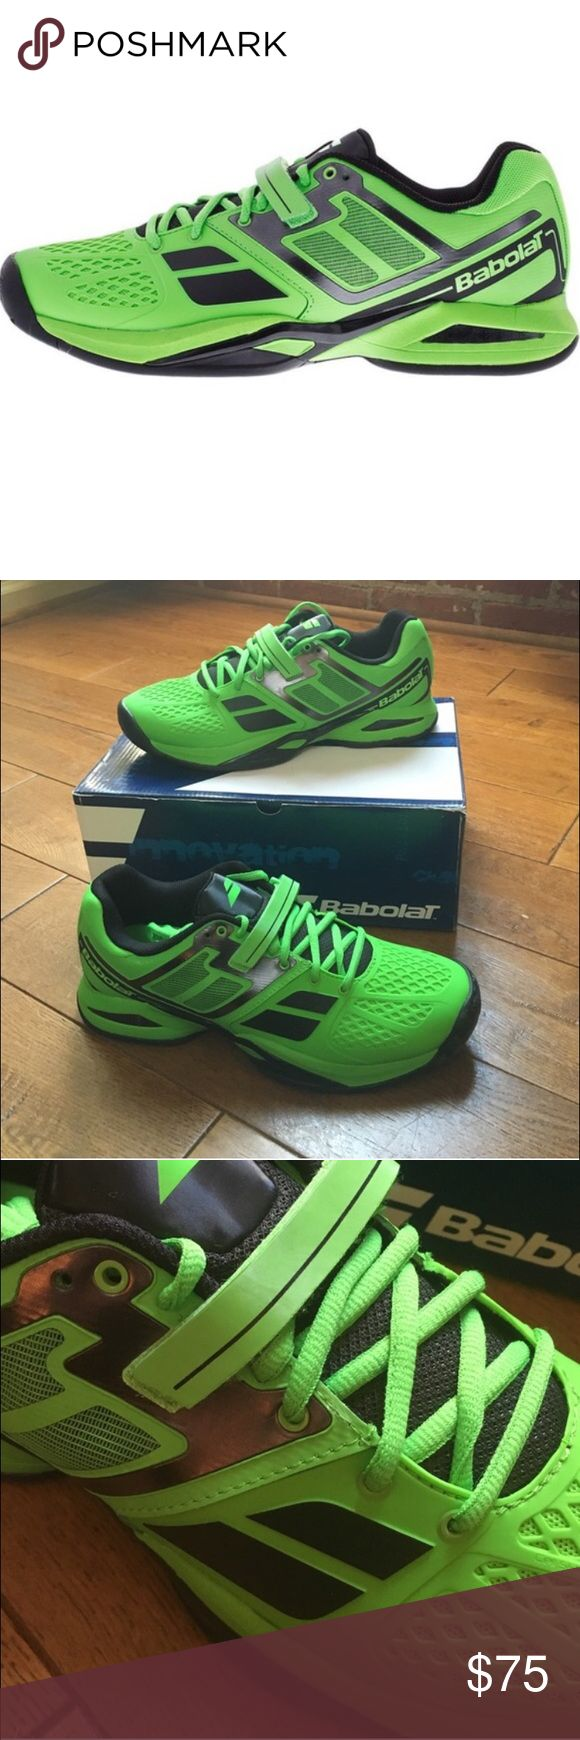 Babolat Men's Green Tennis Sneakers, NIB size 10.5 Babolat men's tennis sneakers, new in box, size 10.5. Bright electric green and gray. Babolat Propulse BPM tennis shoes are engineered to boost the rhythm of your game with the Babolat Pure Motion (BPM) system, developed to enhance your footwork for more effective shifts in direction, and stops and starts, you can depend on the supportive construction, locked-in fit and flexible performance. #babolat #tennis #sneaker #mens #green #gray…